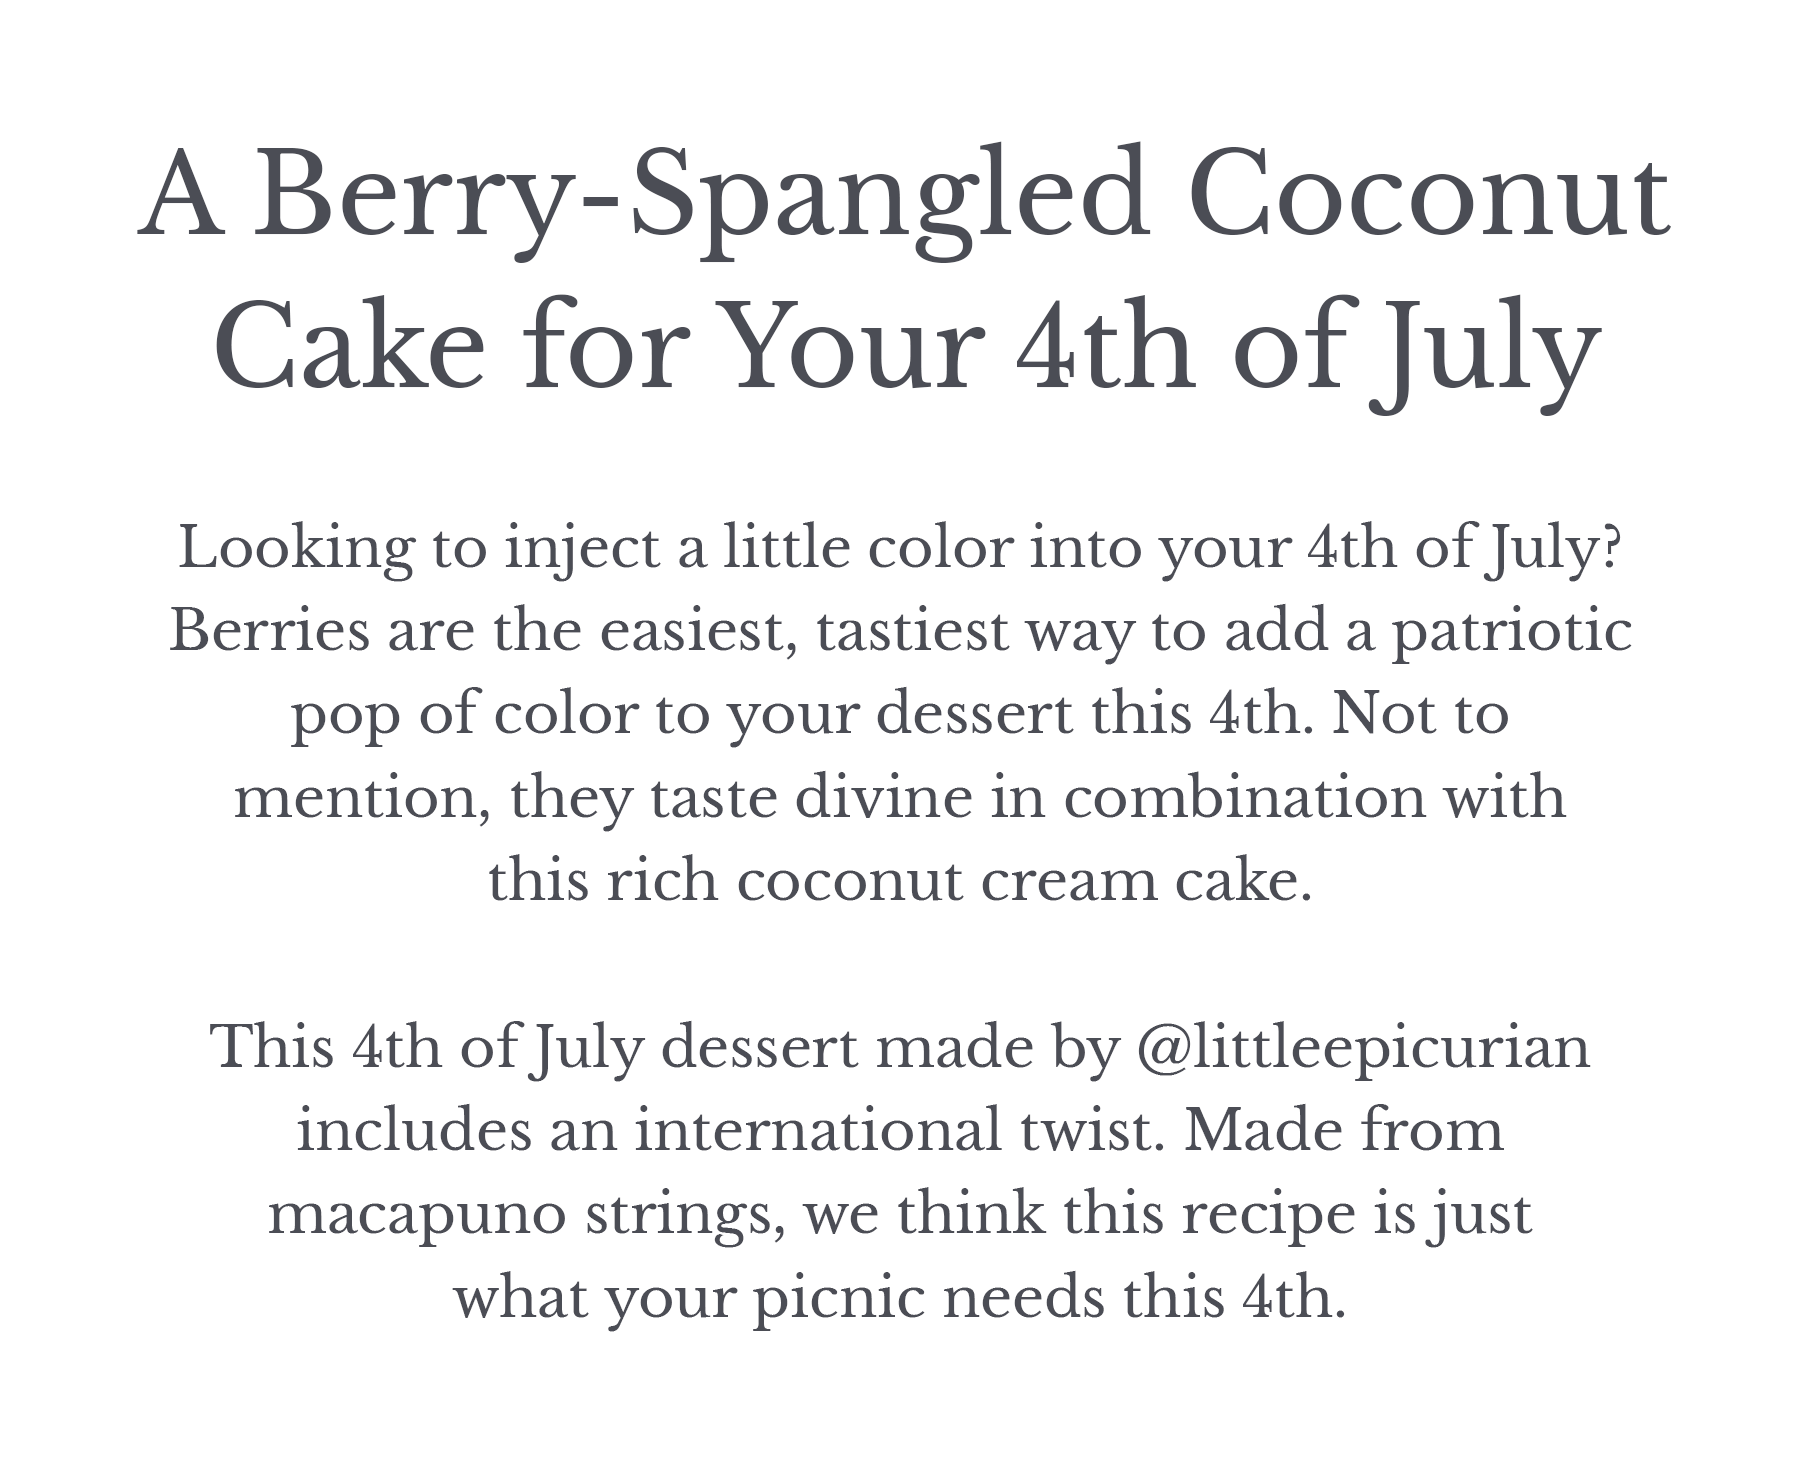 A Berry-Spangled Coconut Cake for Your 4th of July Celebration.